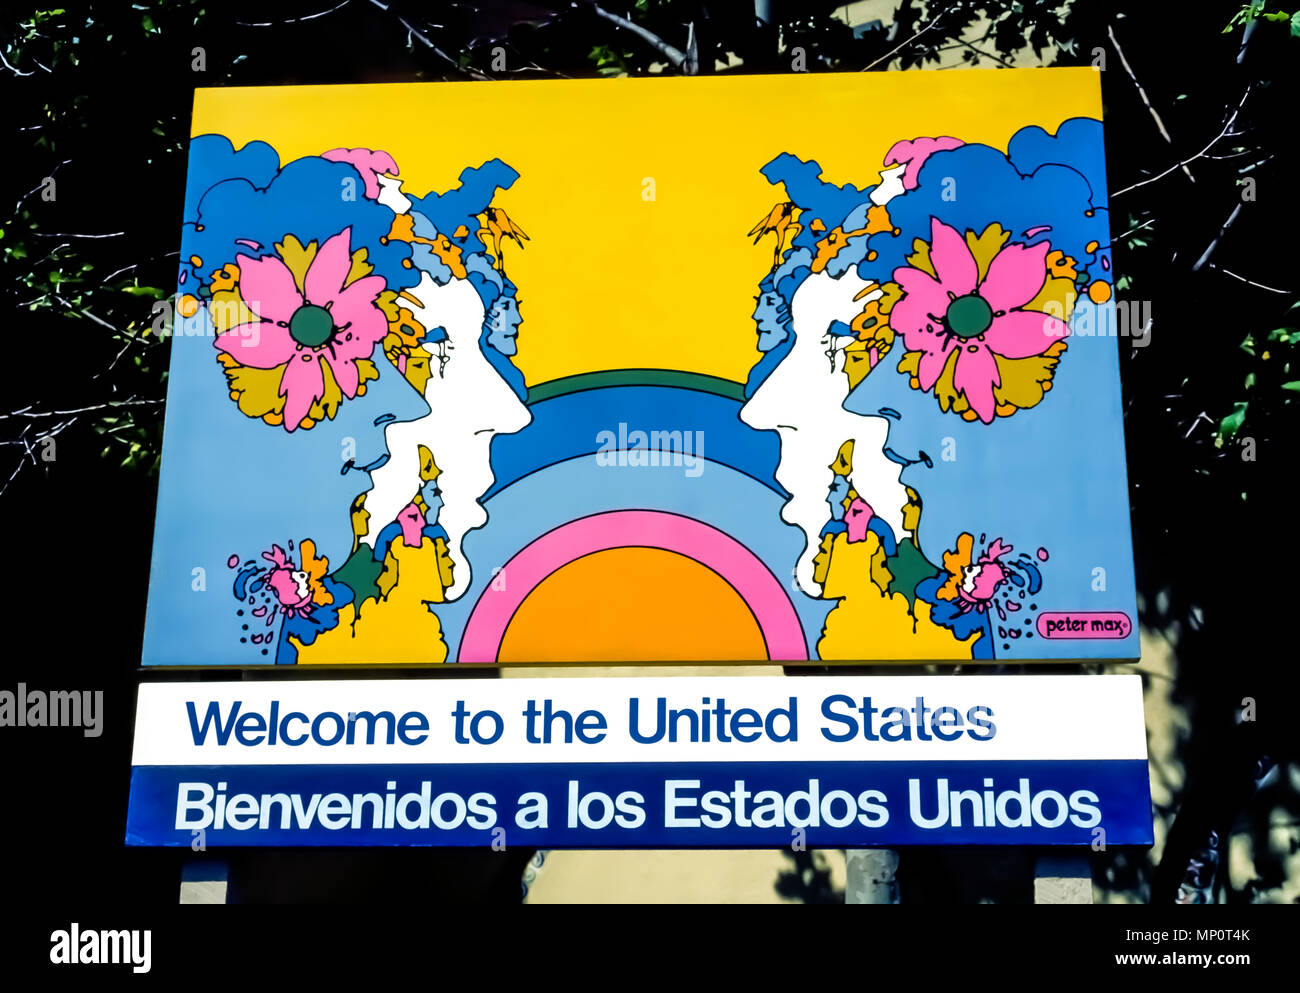 A U.S. government sign illustrated by American artist Peter Max welcomes visitors and immigrants to the United States in English and Spanish languages at the international border crossing at Tijuana, Mexico, in North America. A master of pop art known for using bright colors in his work, Max is the official portrait artist for welcome banners at U.S. ports of entry. - Stock Image